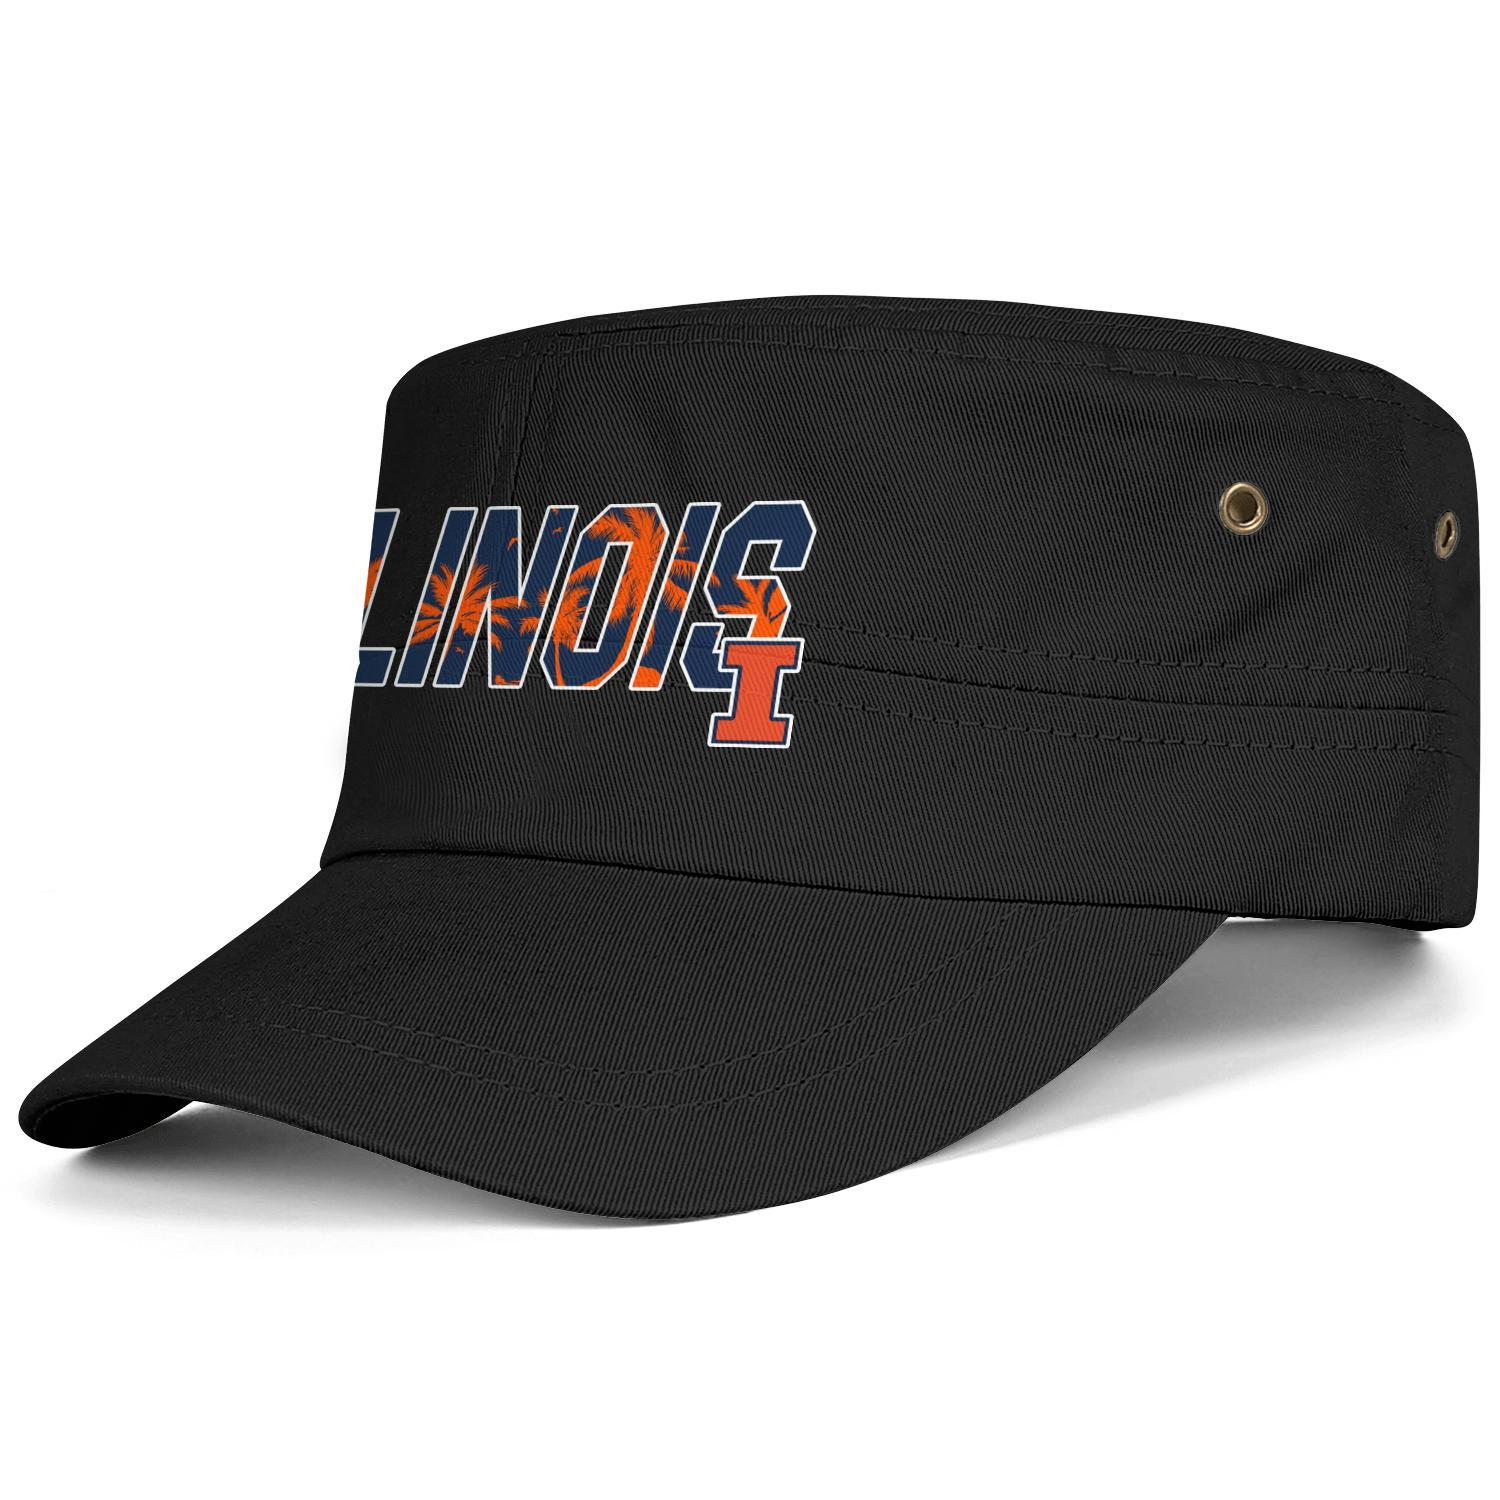 Illinois Fighting Illini Basketball Coconut tree logo Black Men Women Military Fitted Cadet Army Cap Tactical Hat Flat Hat Student